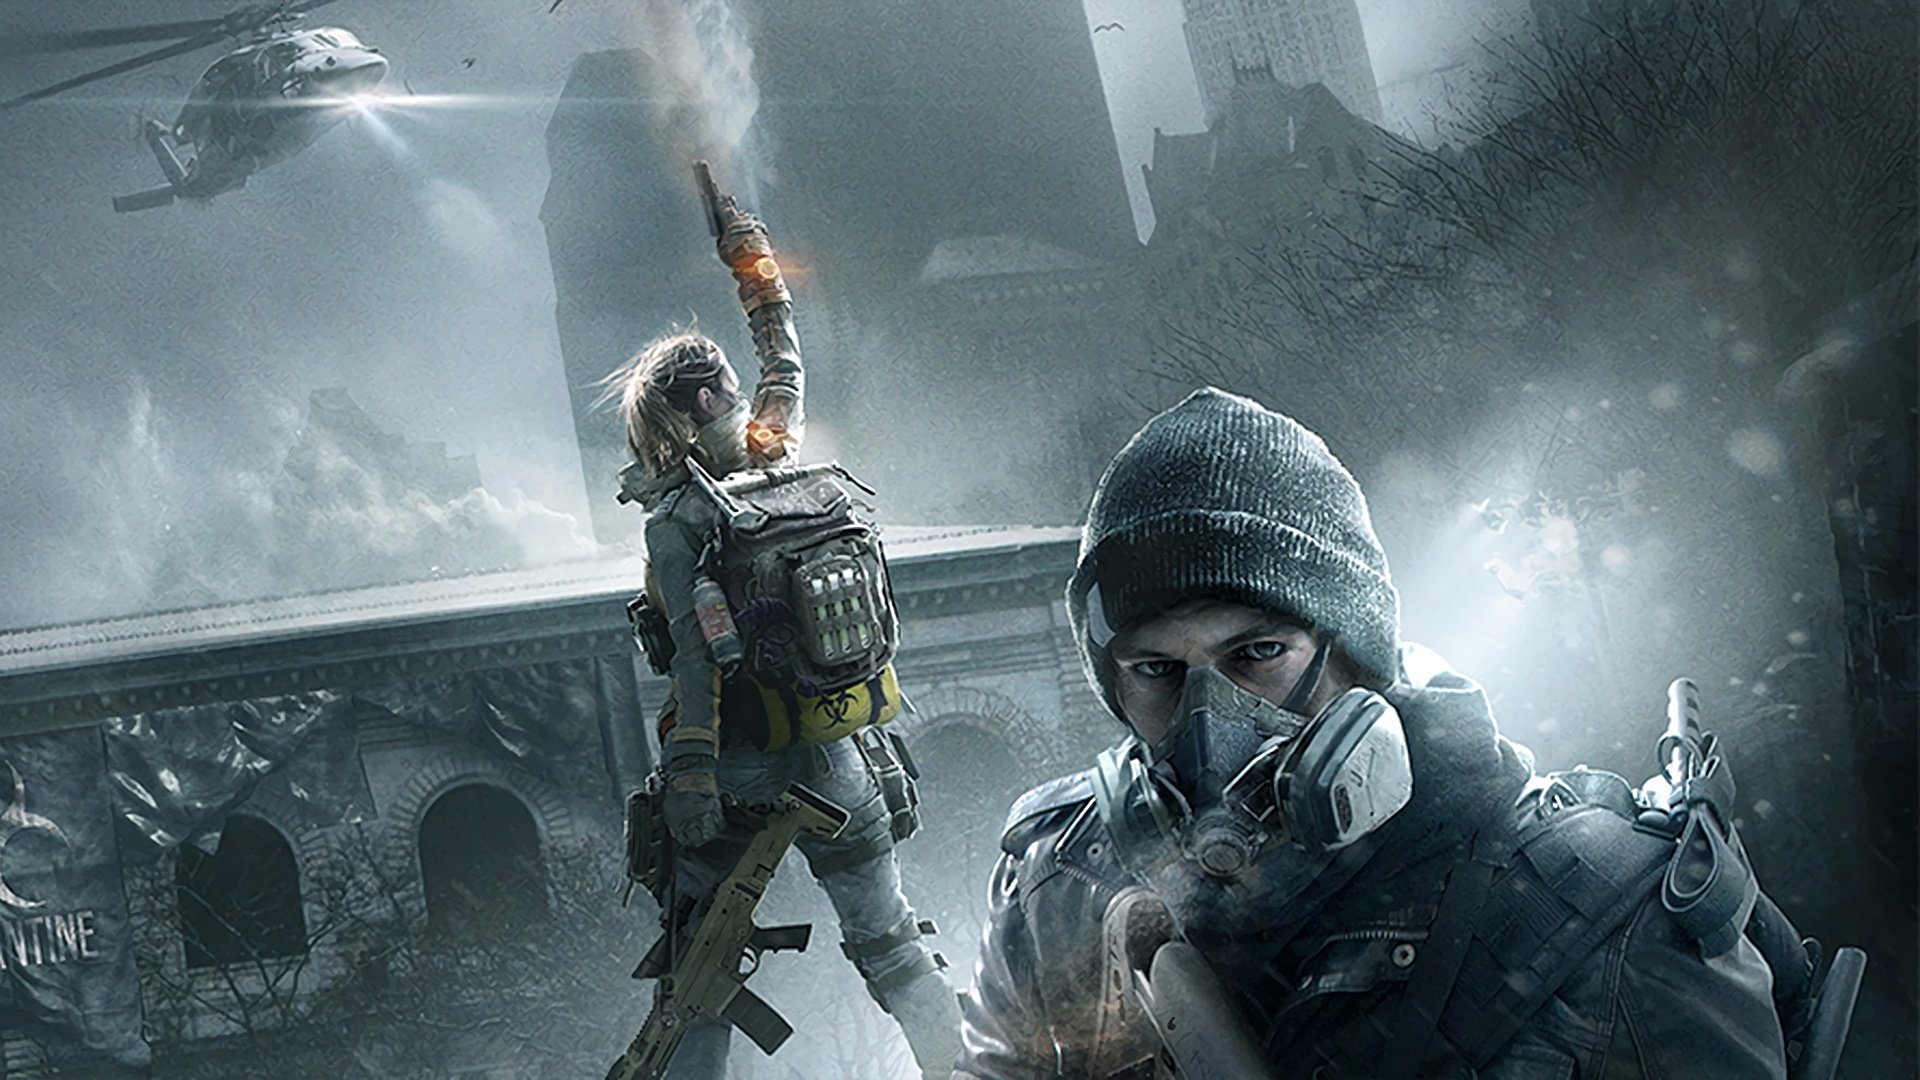 The Division 2 Wallpaper 1920x1080 Posted By Ryan Johnson